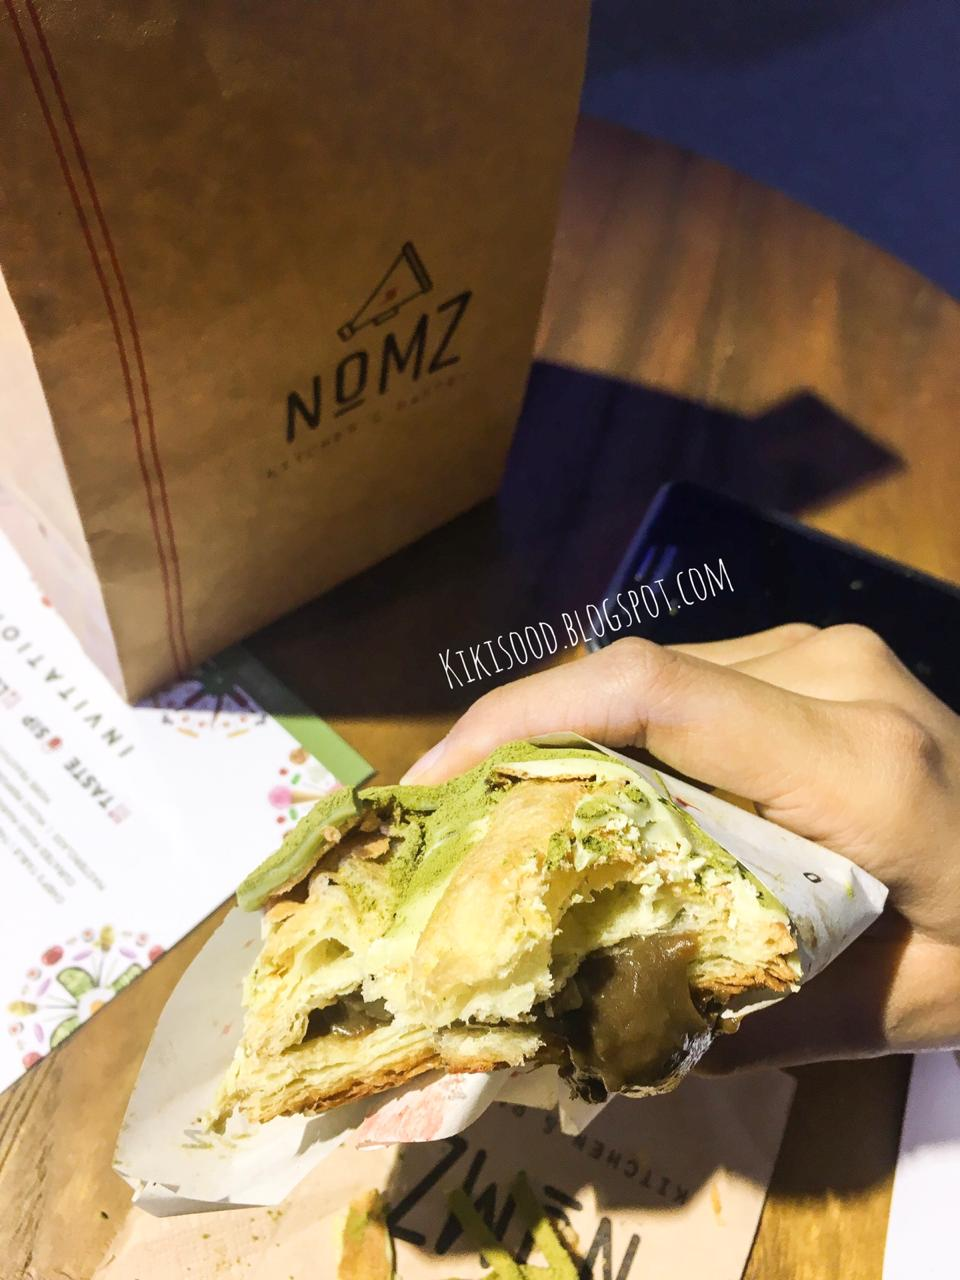 Nomz Kitchen & Pastry